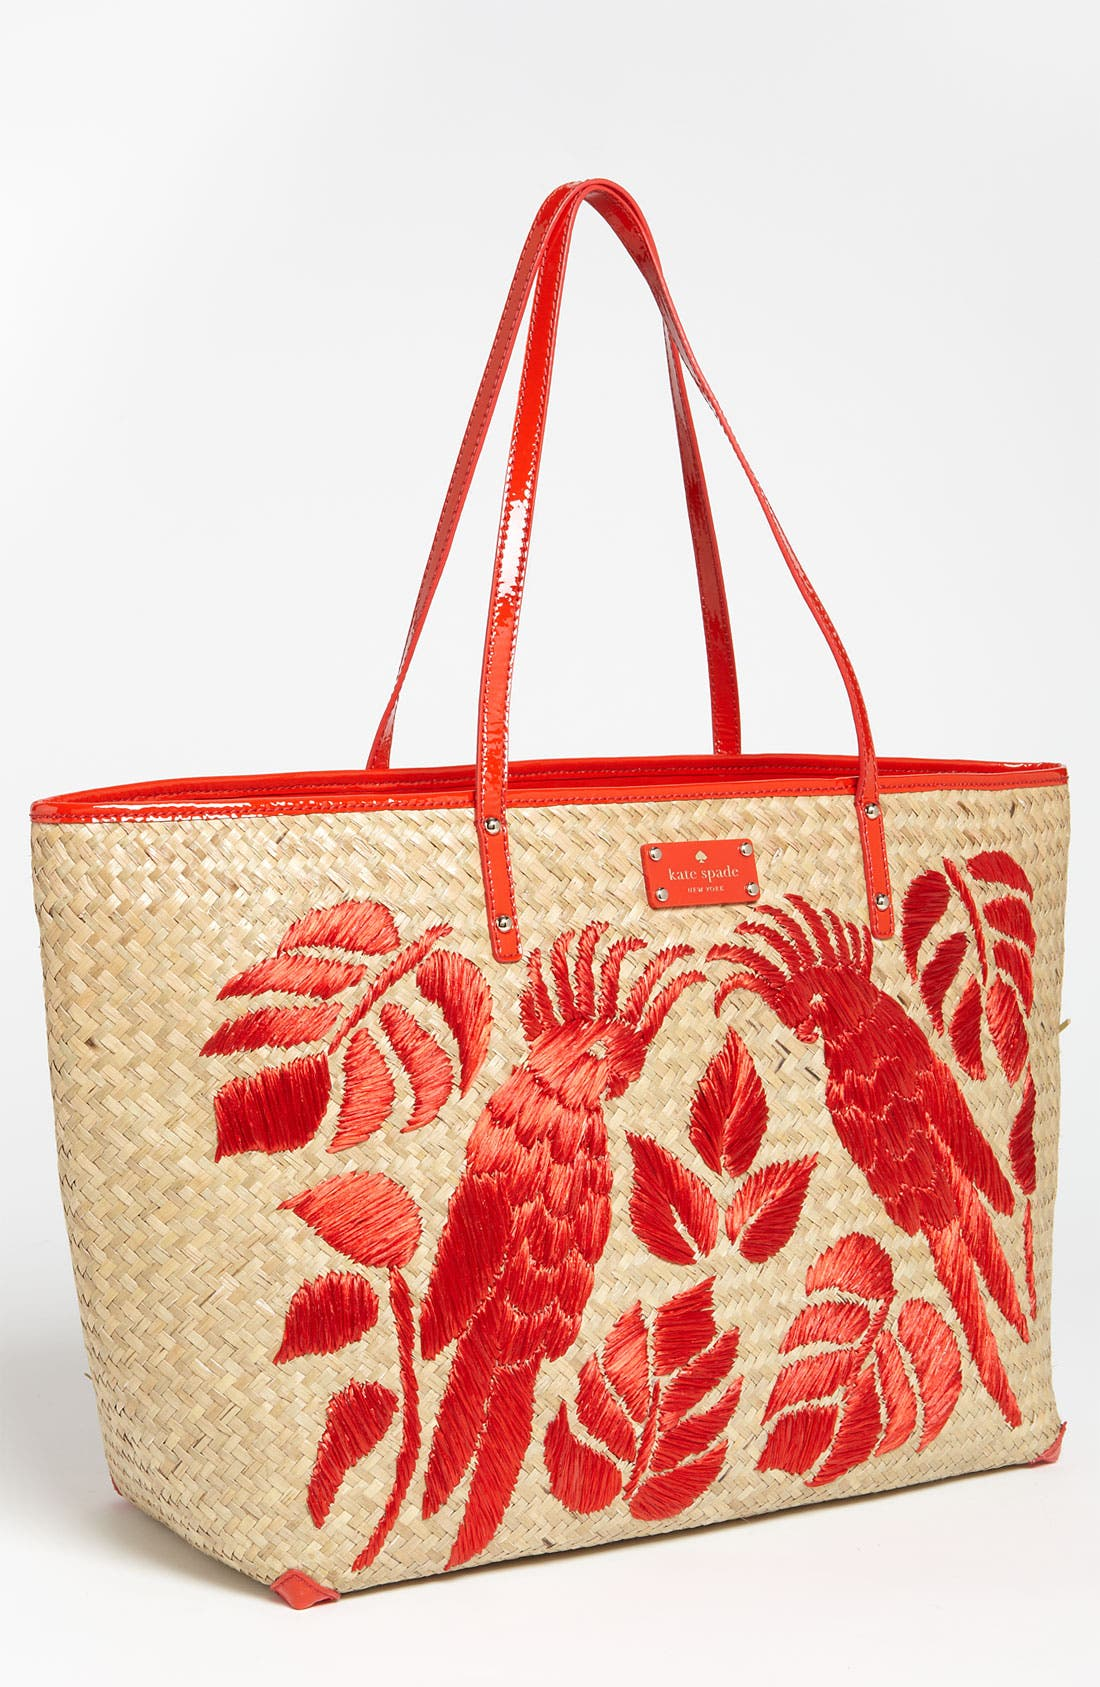 Alternate Image 1 Selected - kate spade new york 'harmony' embroidered straw tote